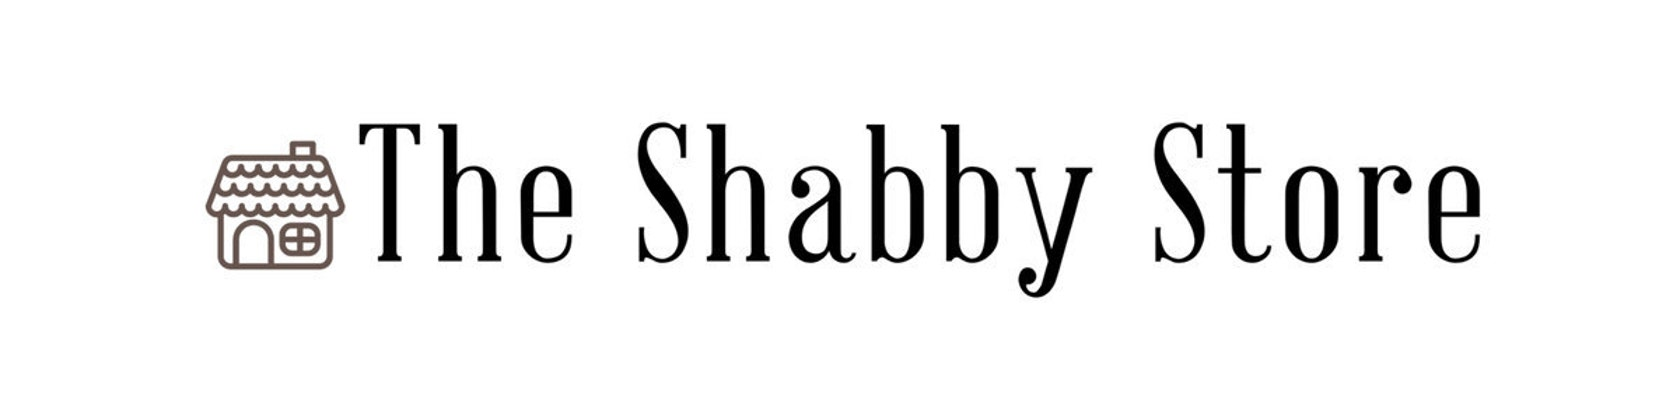 Etsy Top 35 shop for refinished home decor and von TheShabbyStore